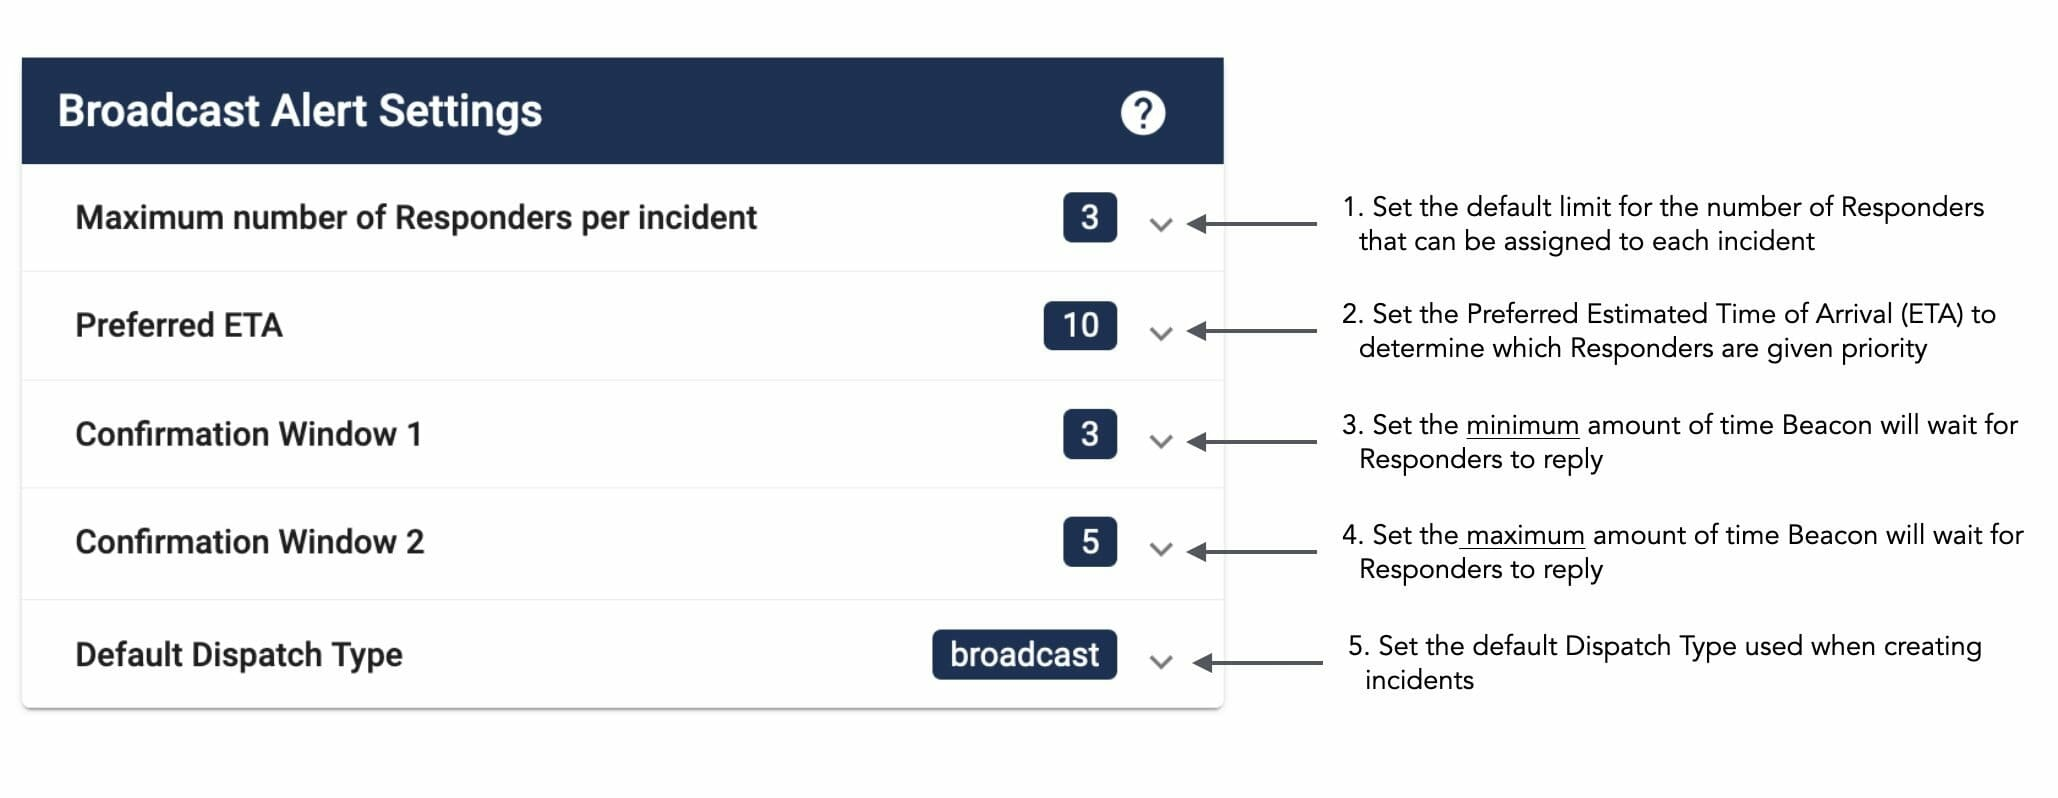 Broadcast Alert Settings with Descriptions - Dispatcher Guide - Beacon Emergency Dispatch v5.0